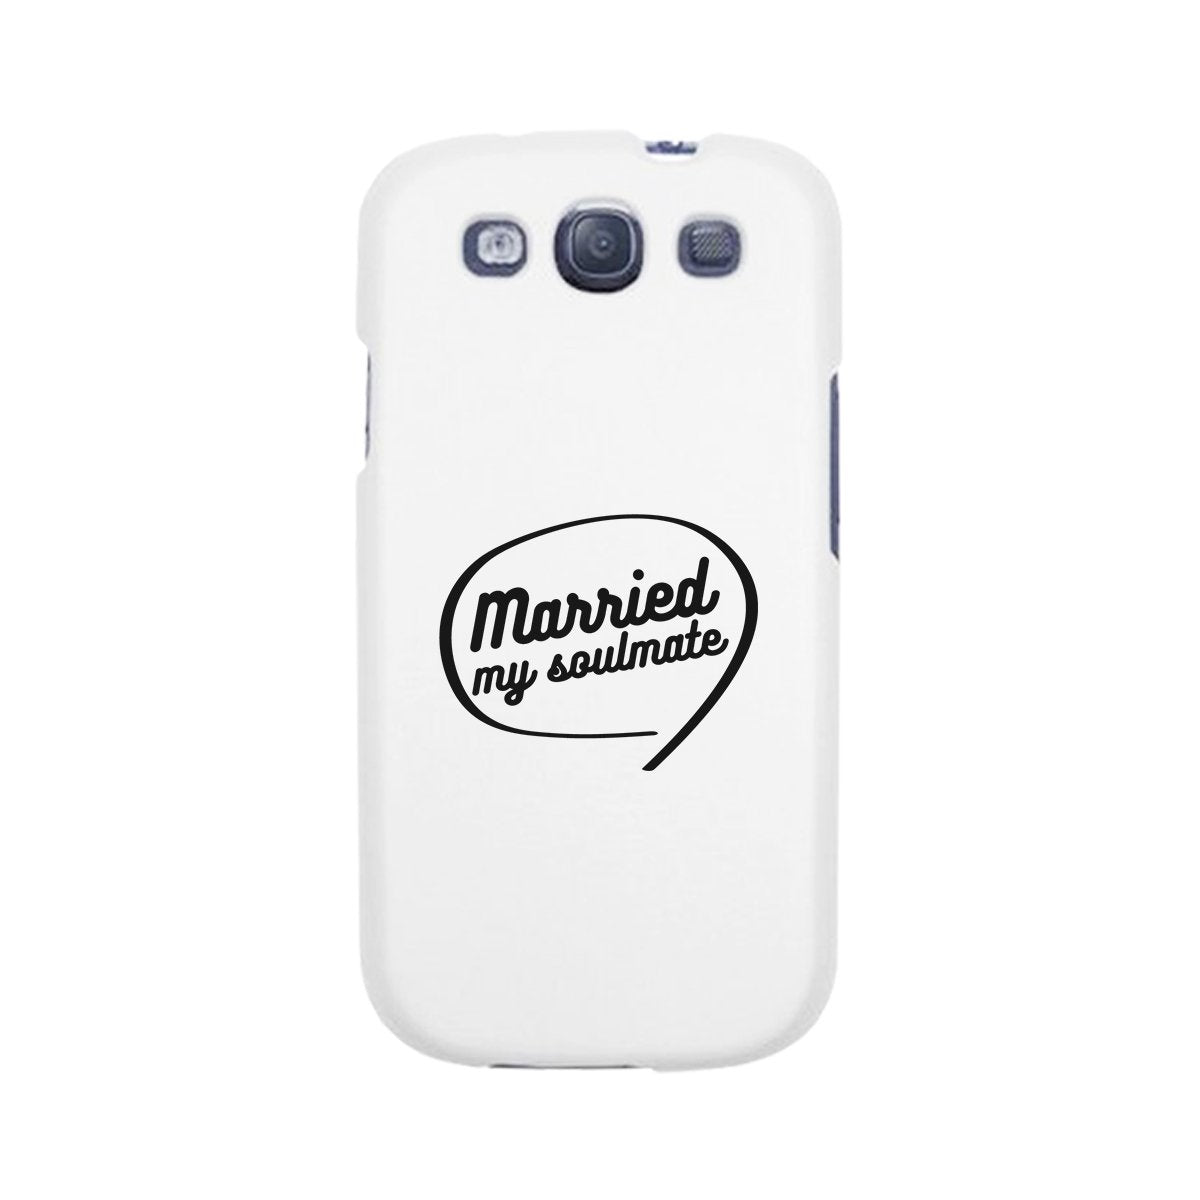 Married My Soulmate White Phone Case